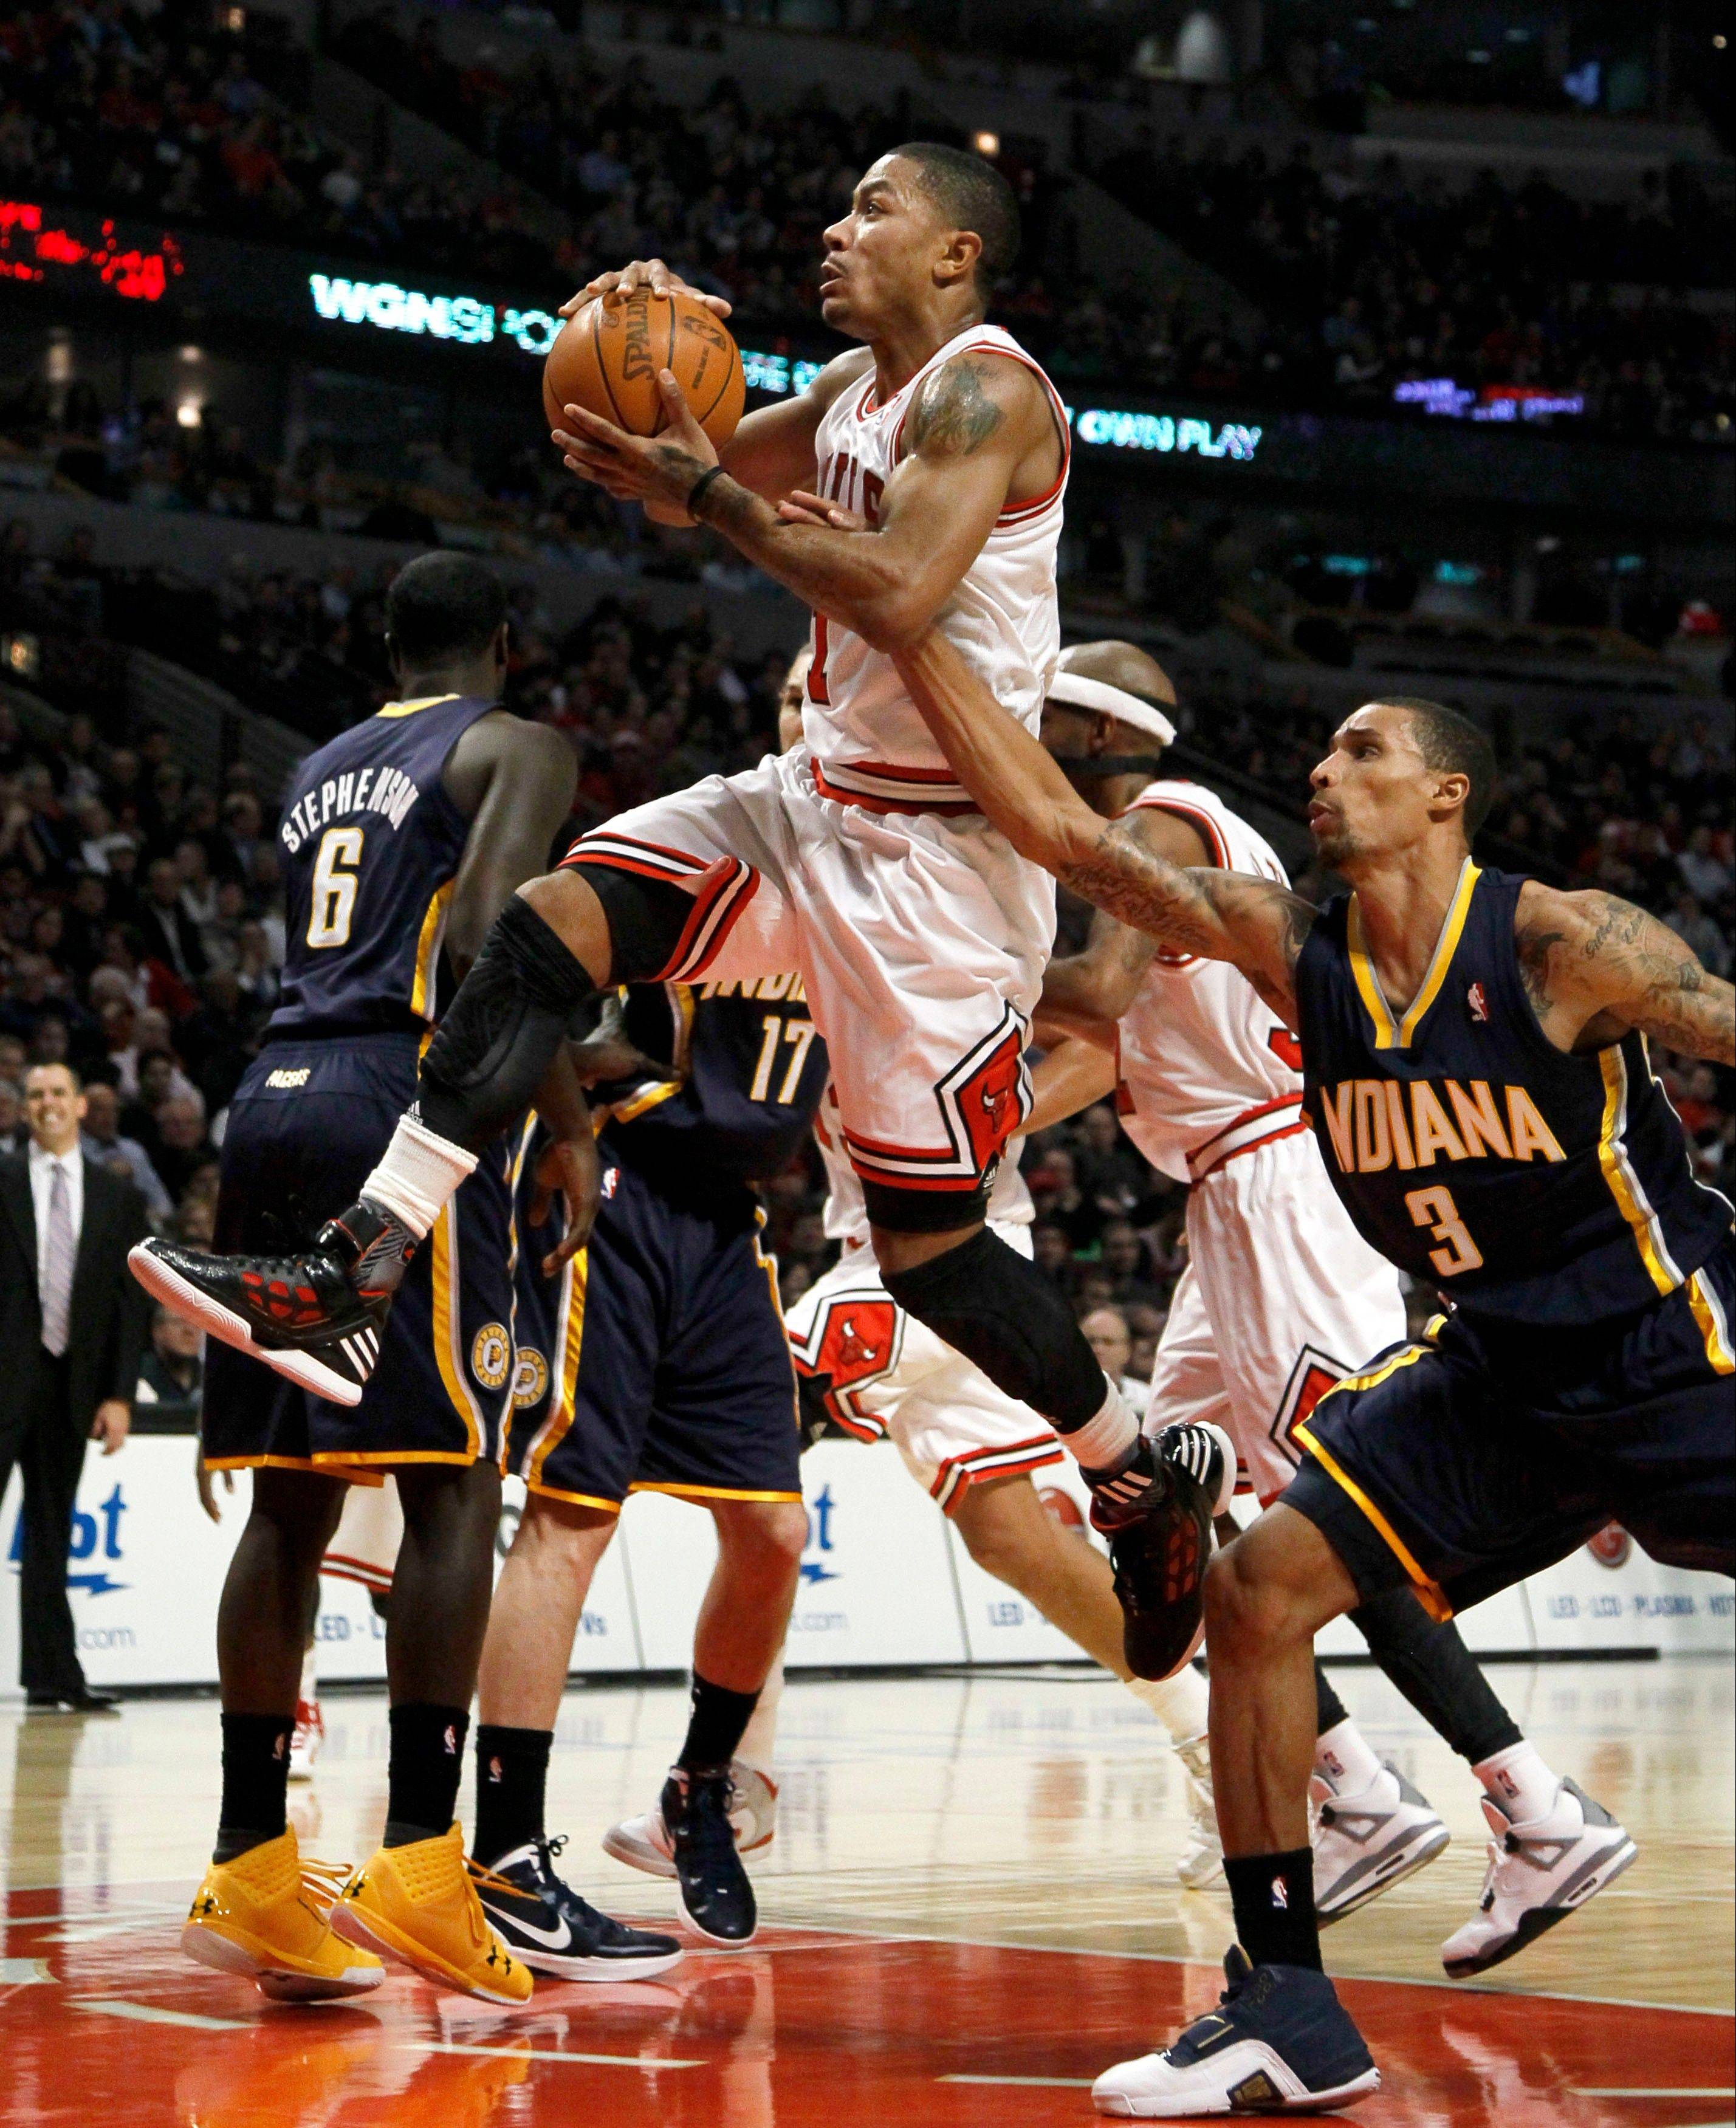 Bulls let one slip away against Pacers